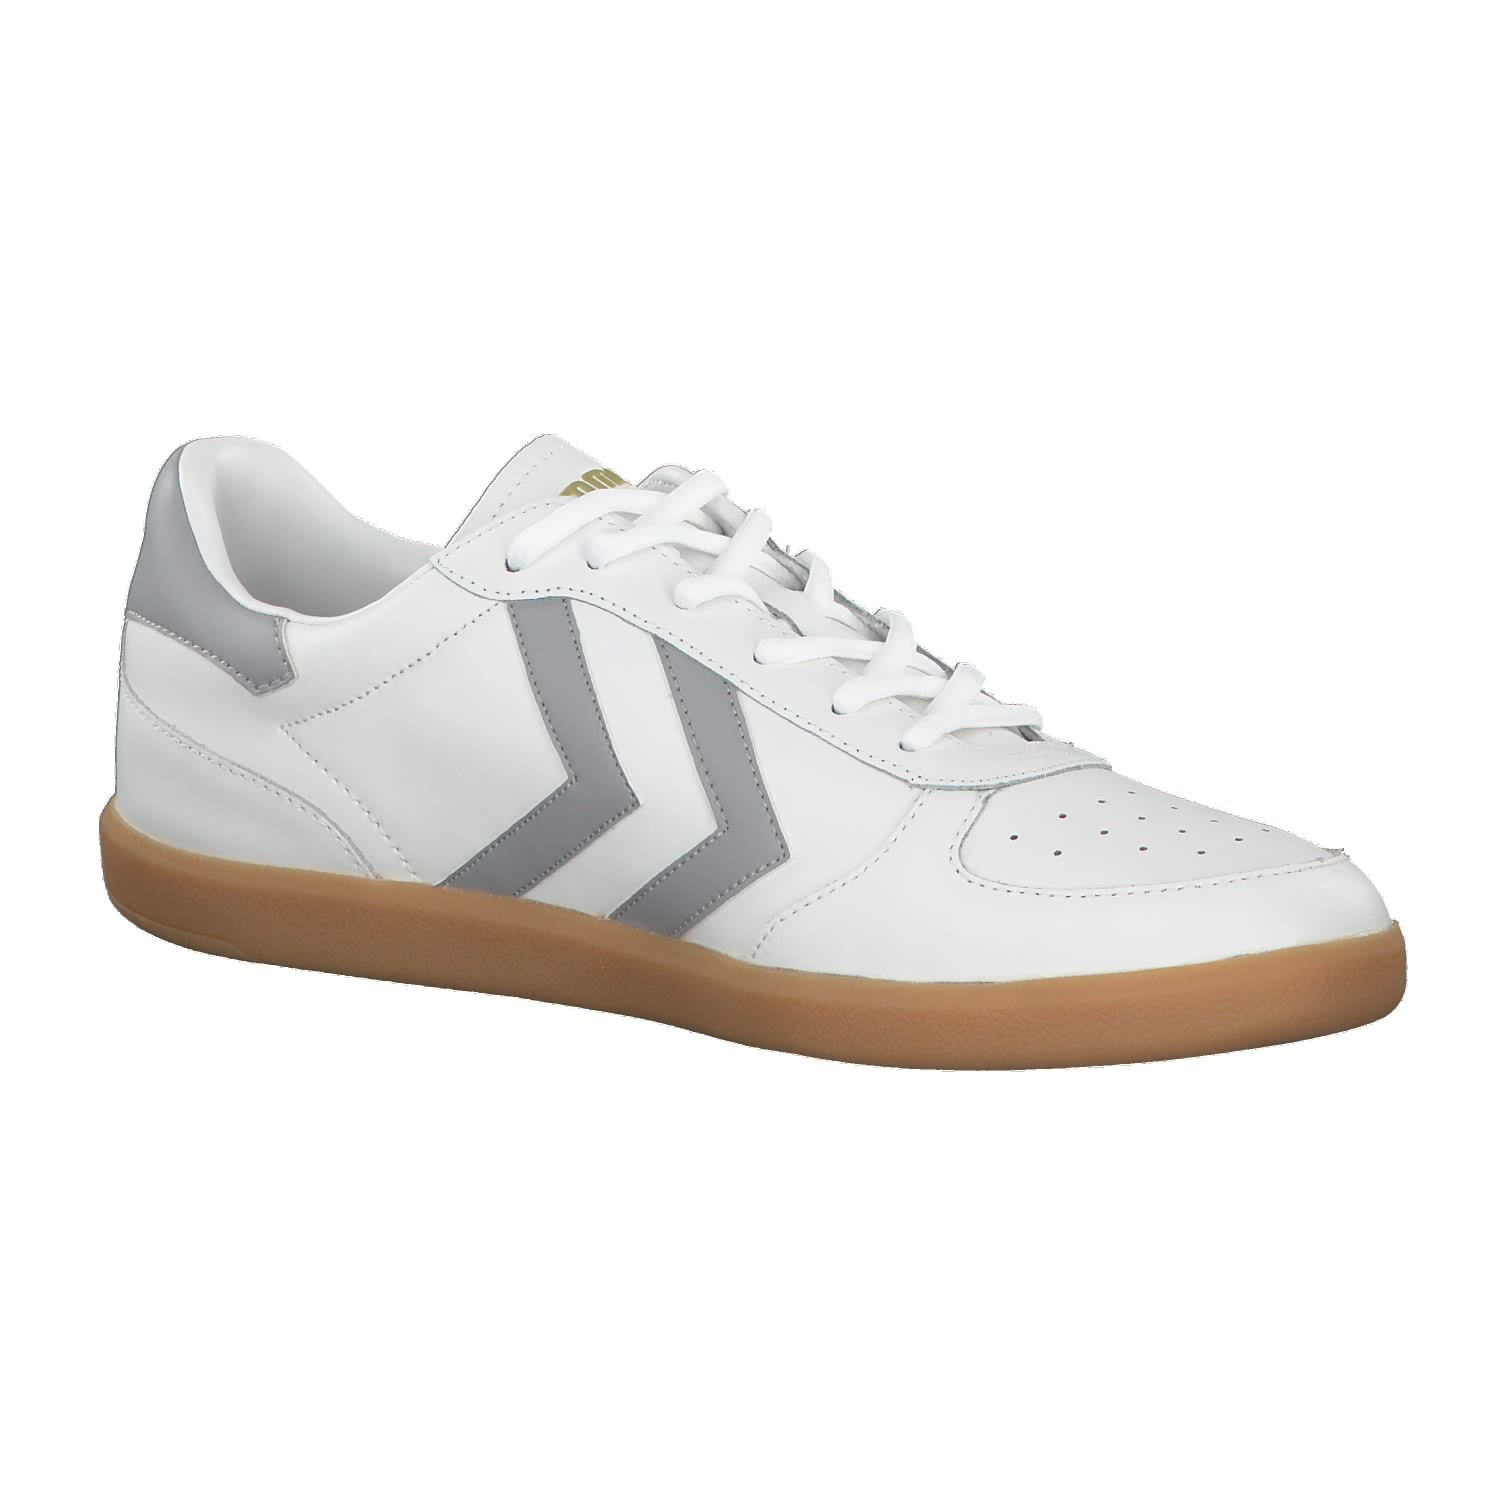 Hummel Sneaker Victory Leather 201943